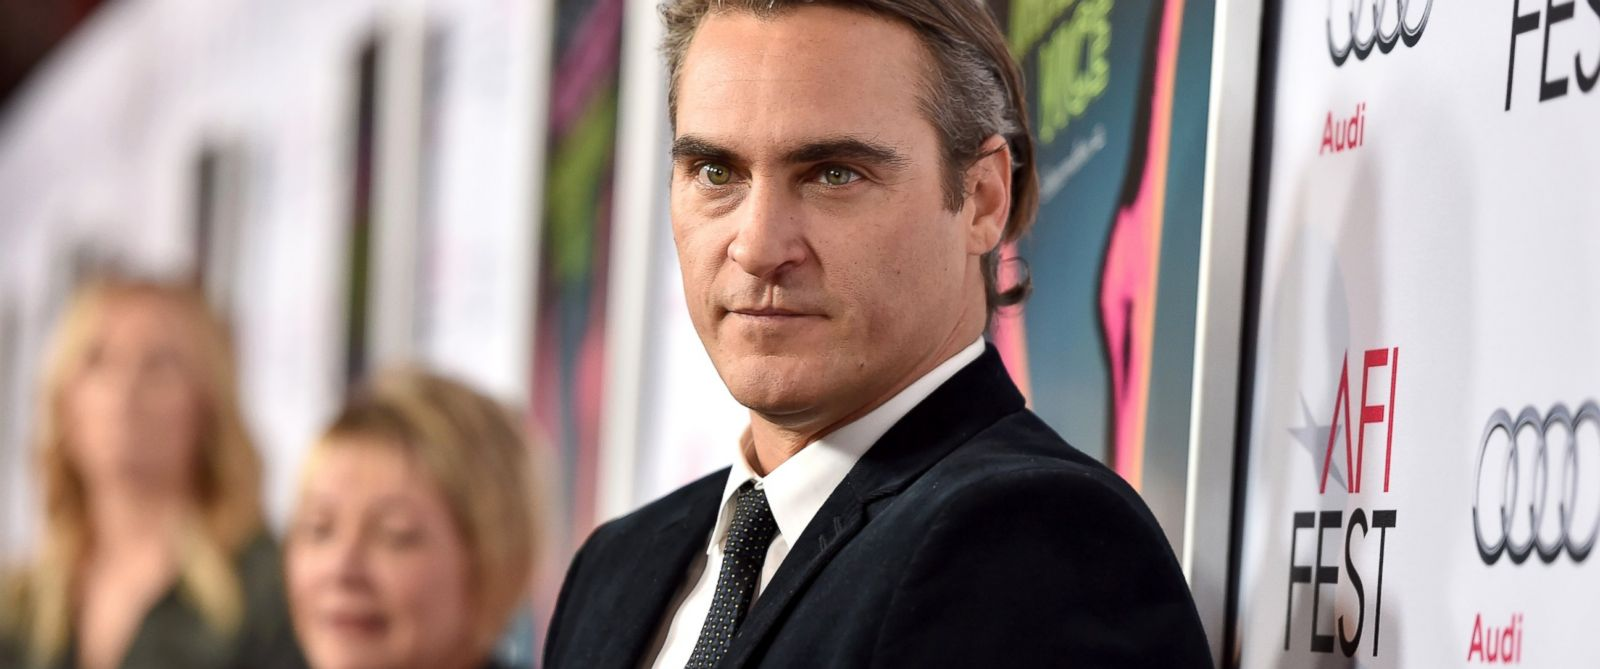 """PHOTO: Joaquin Phoenix attends the screening of """"Inherent Vice"""" during AFI FEST 2014 presented by Audi at the Egyptian Theatre, Nov. 8, 2014, in Hollywood, Calif."""